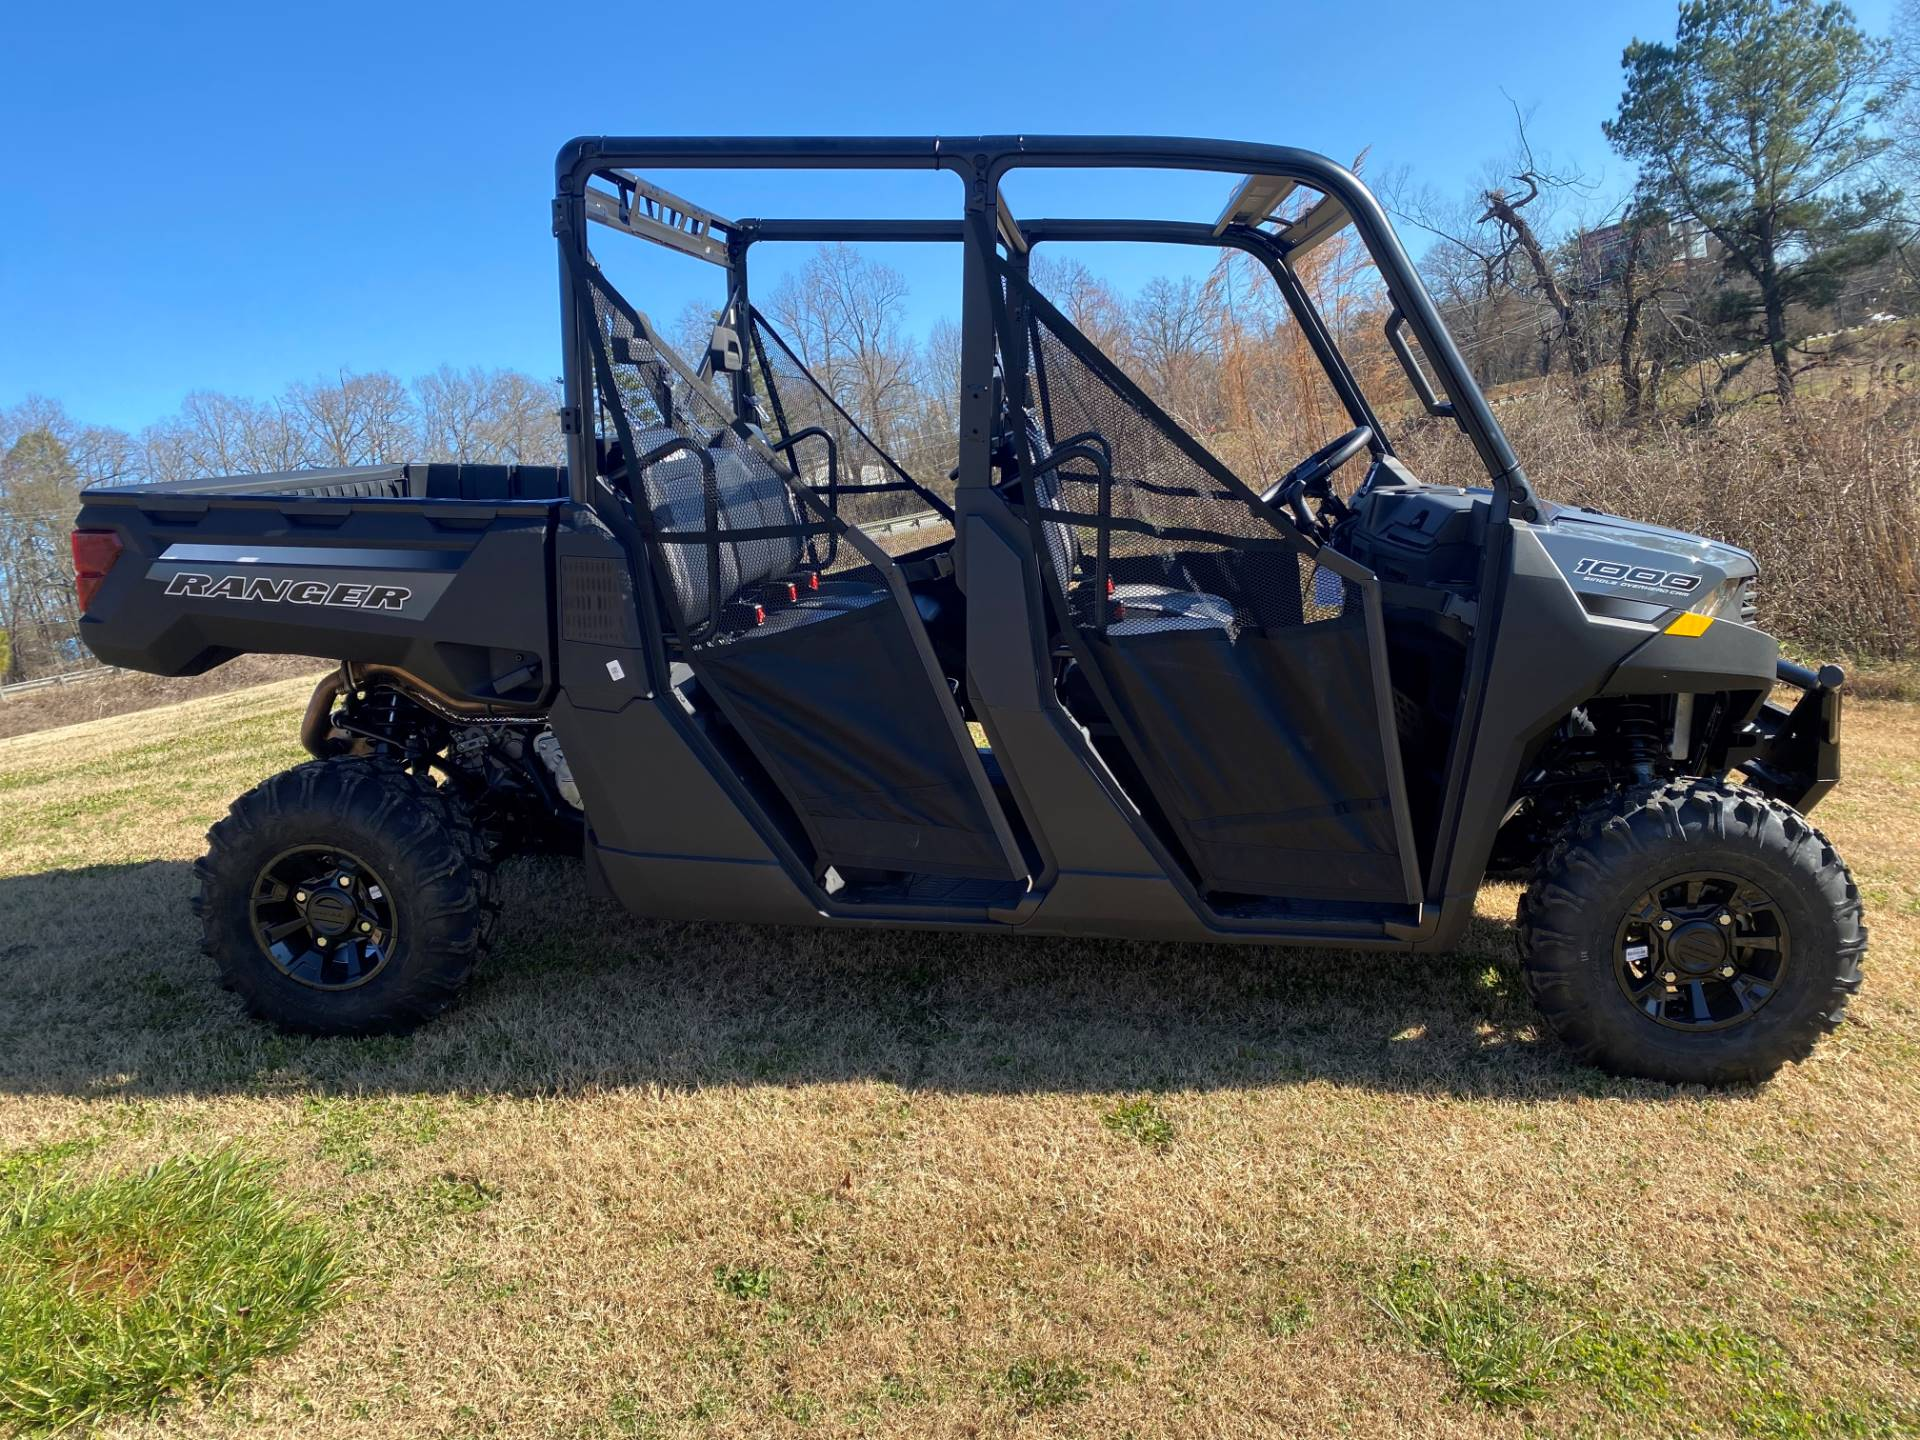 2021 Polaris Ranger Crew 1000 Premium in Greer, South Carolina - Photo 11